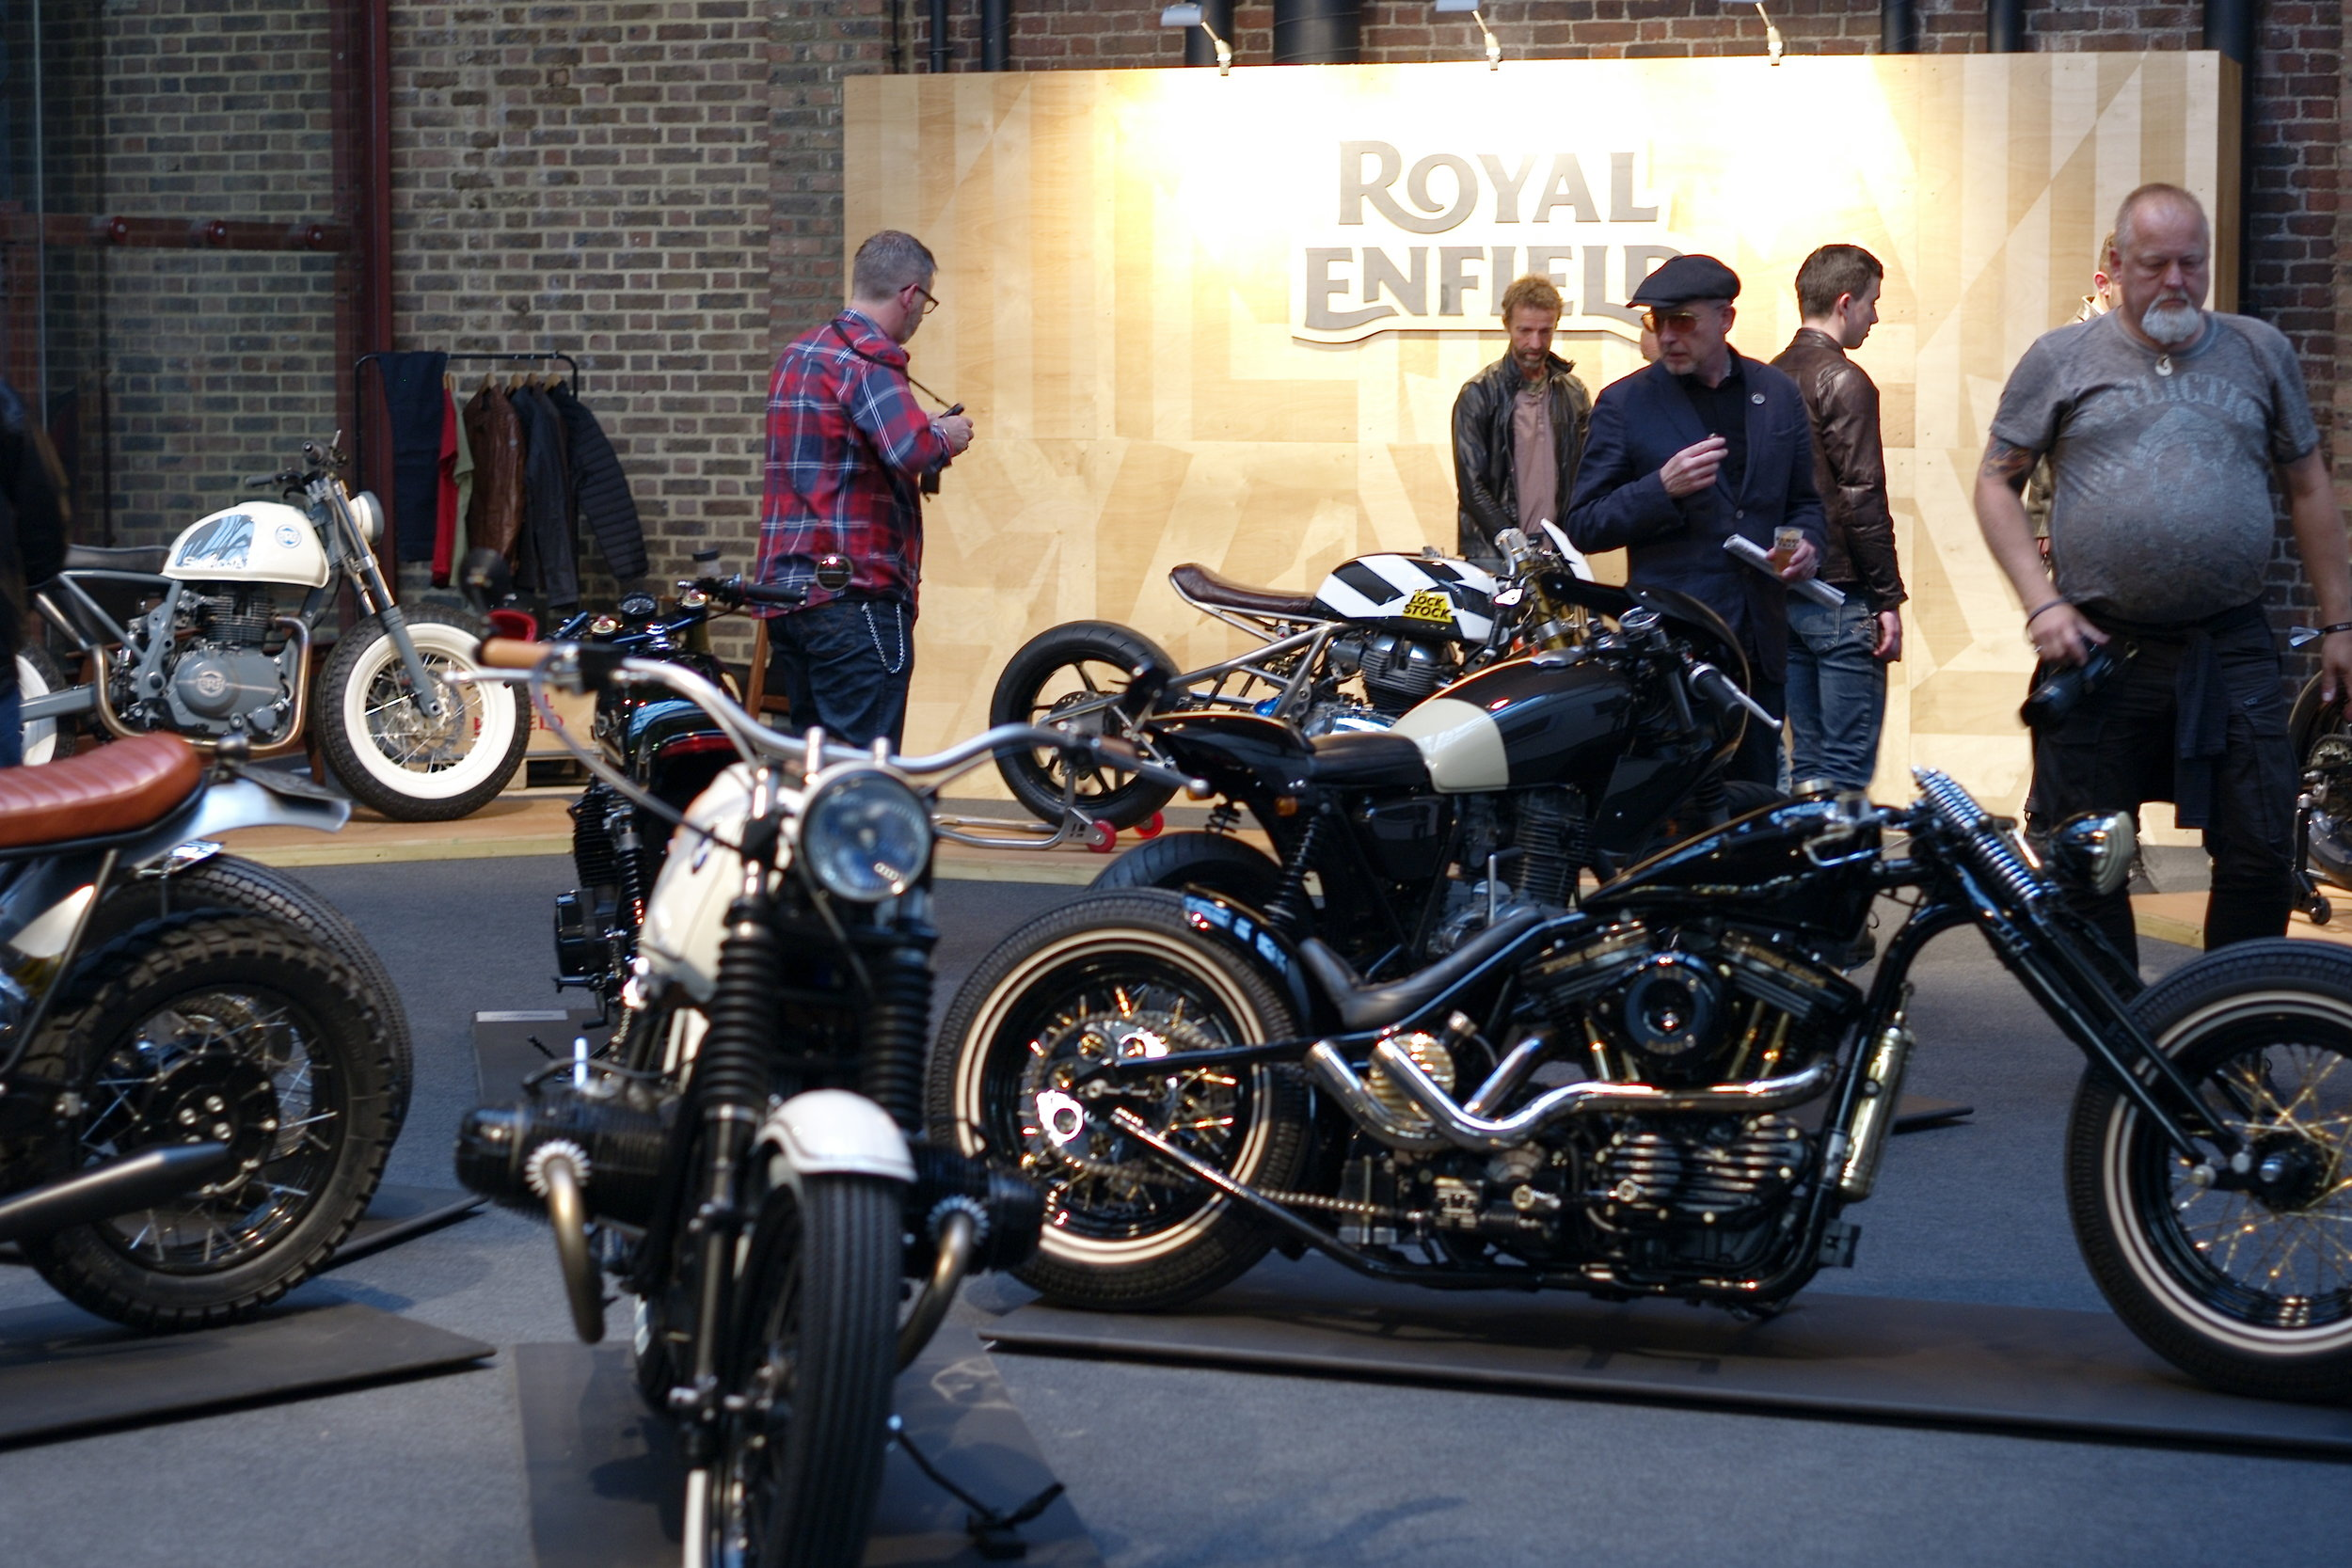 Casual snob - Bikeshed London 2018 21a.JPG